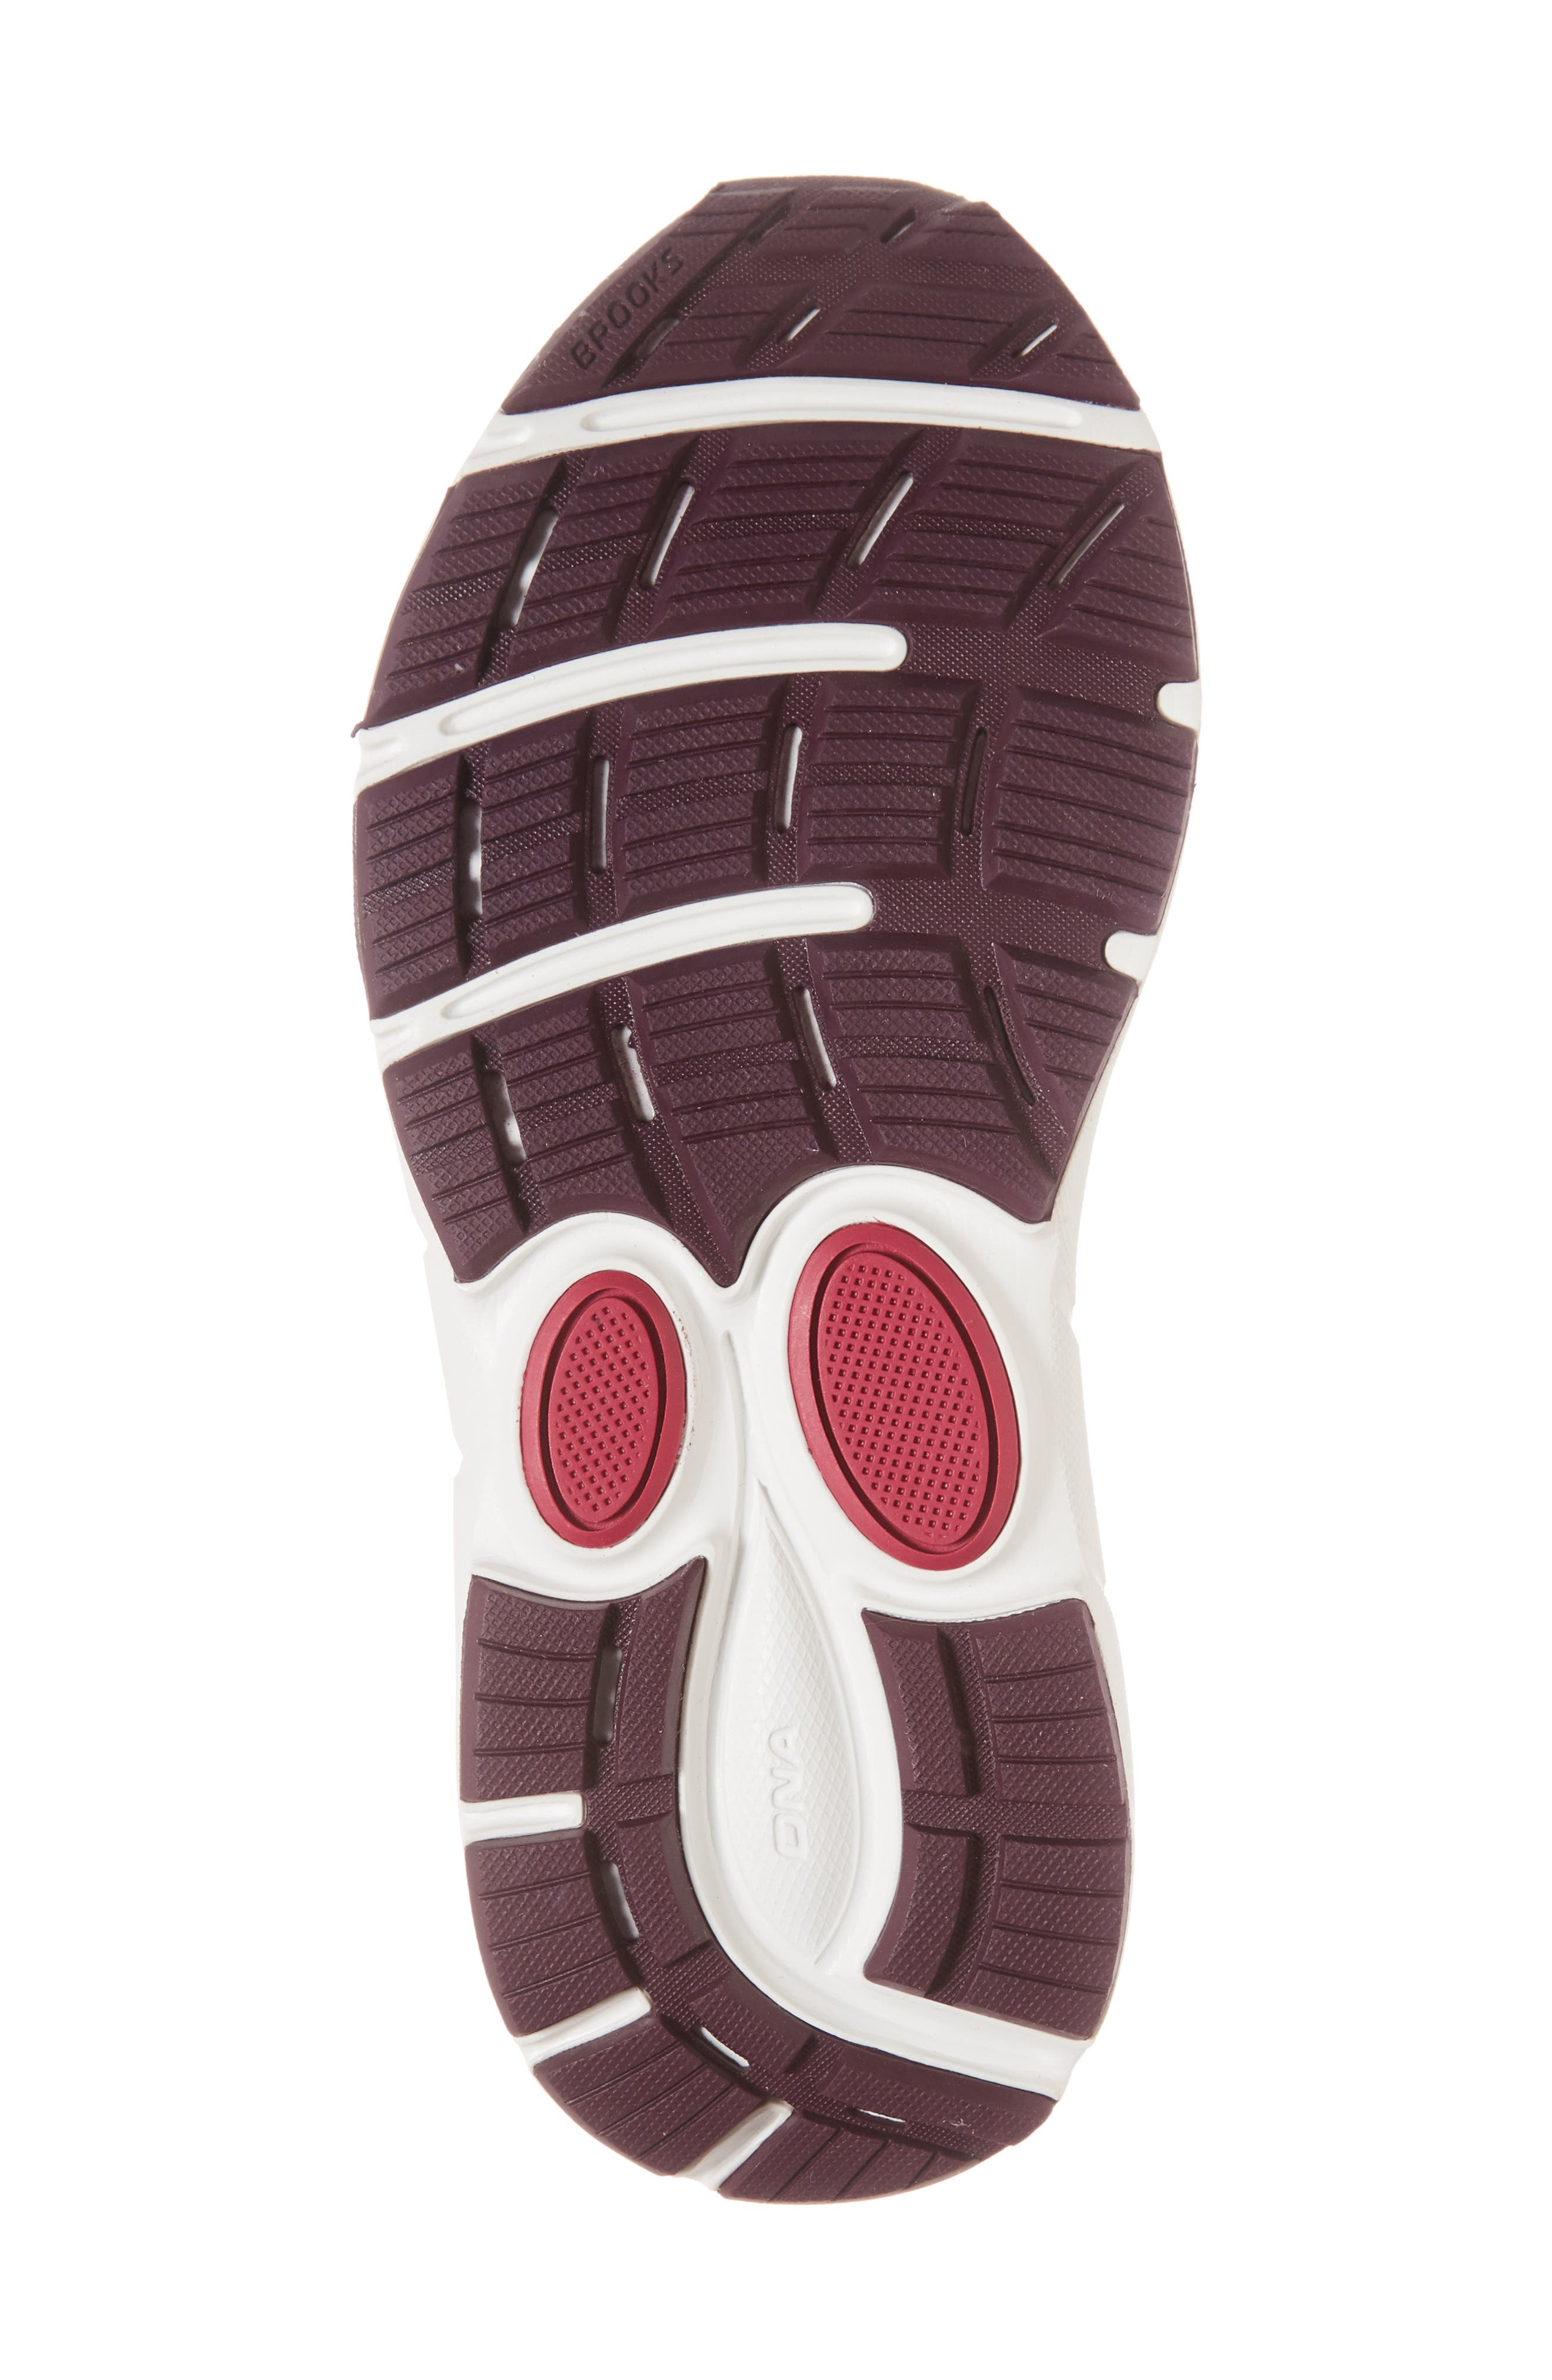 Dyad 10 Running Shoe,                             Alternate thumbnail 6, color,                             PURPLE/ PINK/ GREY